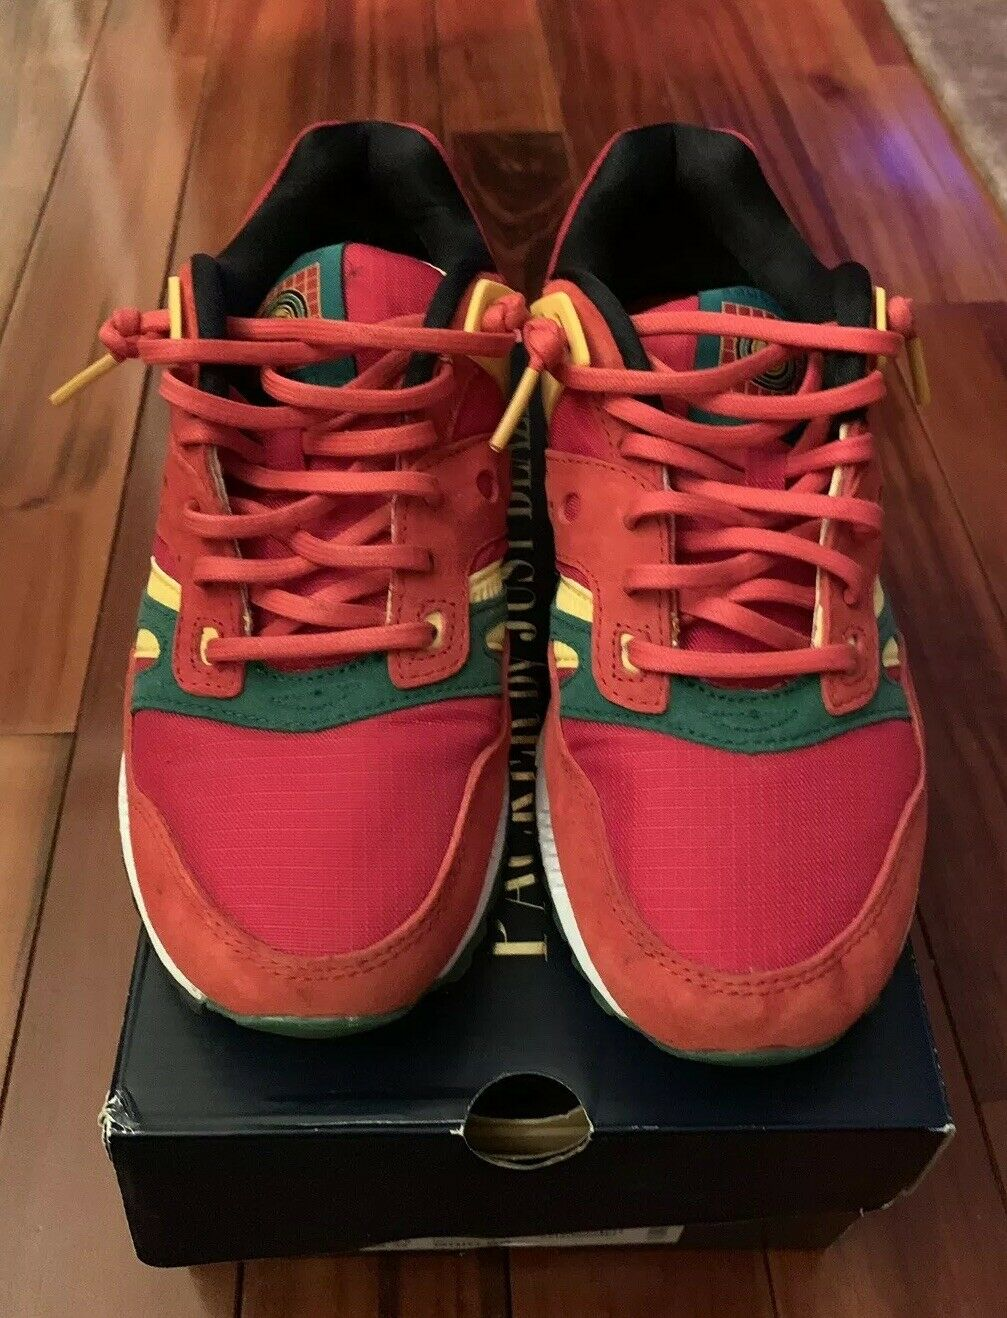 2015 Saucony Grid SD X Packer Chaussures x Just Blaze Rouge Jaune Casino Taille 6.5